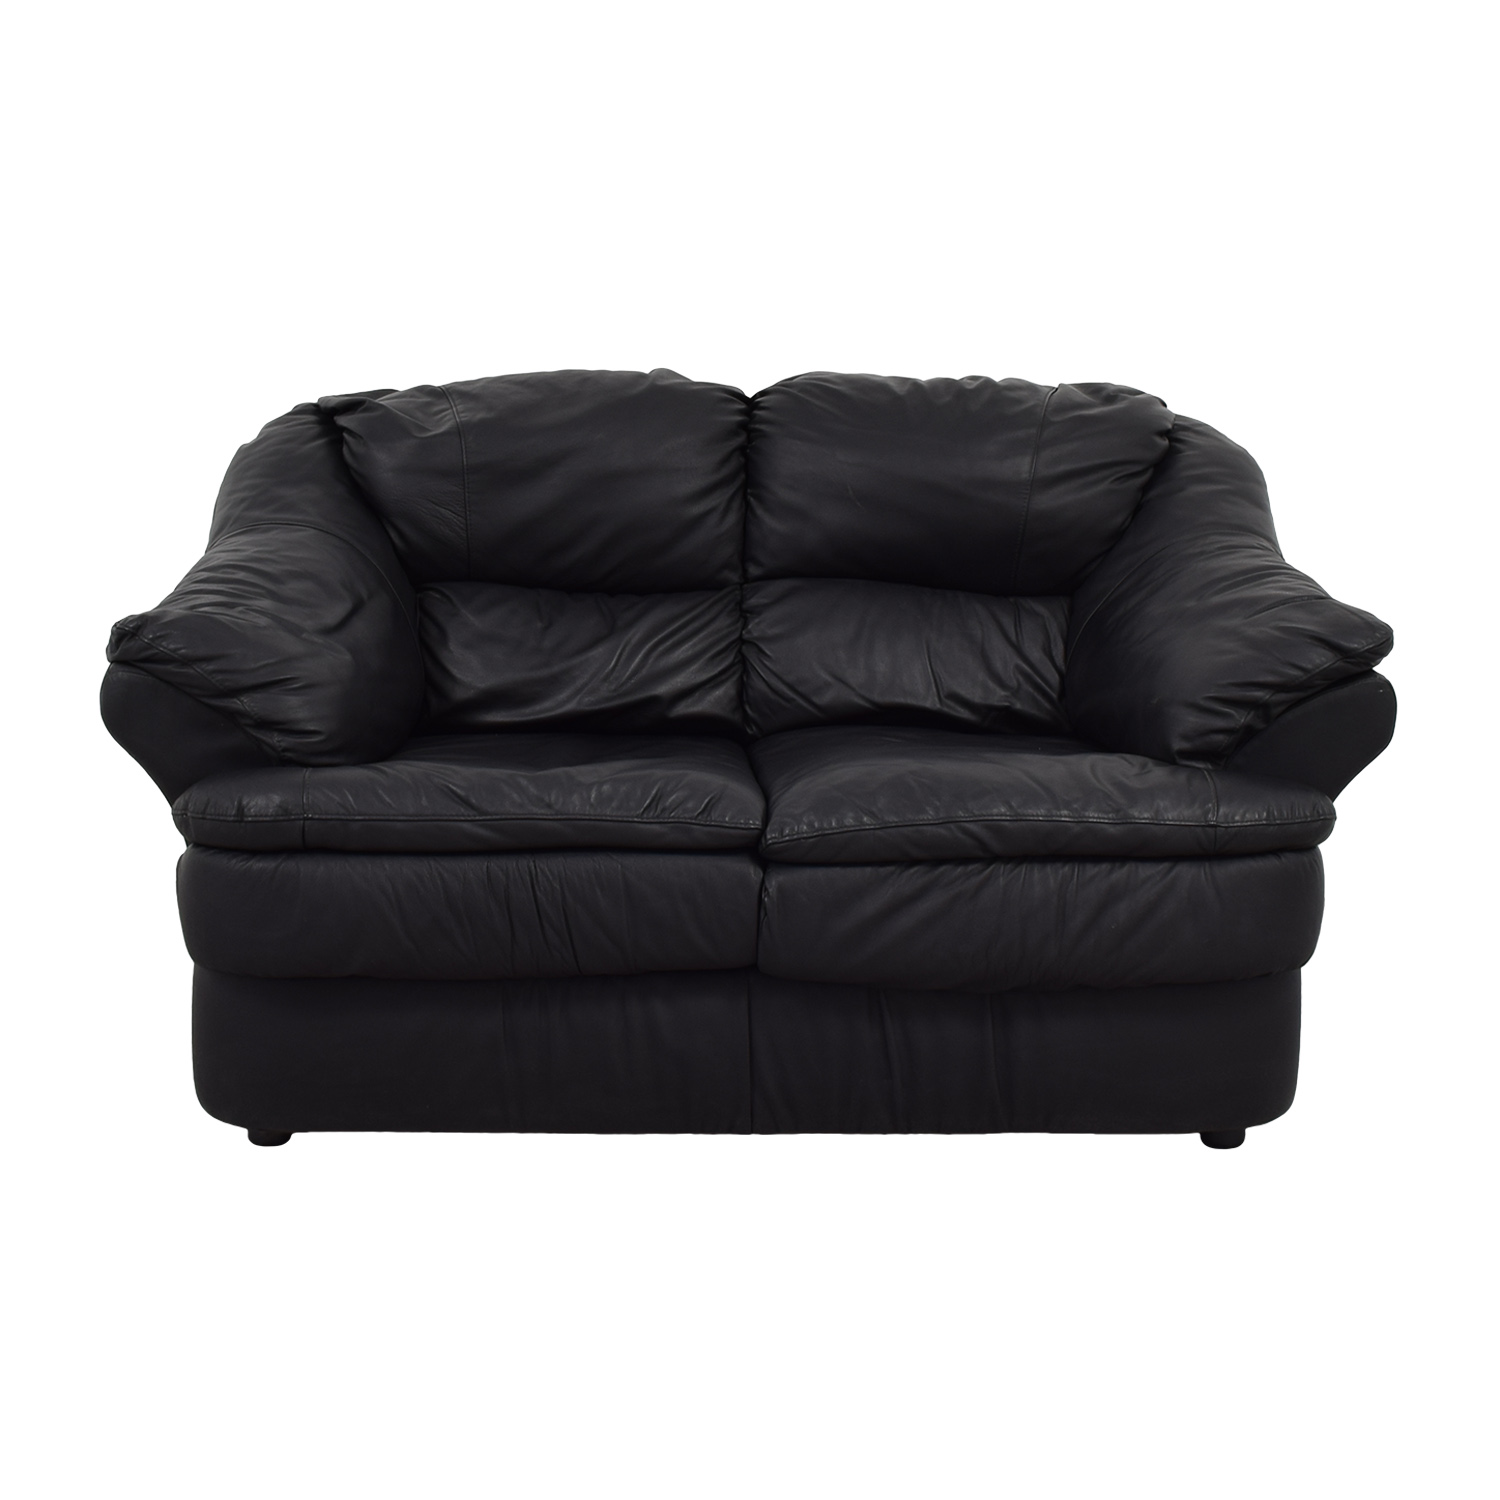 Italian Leather Black Loveseat second hand